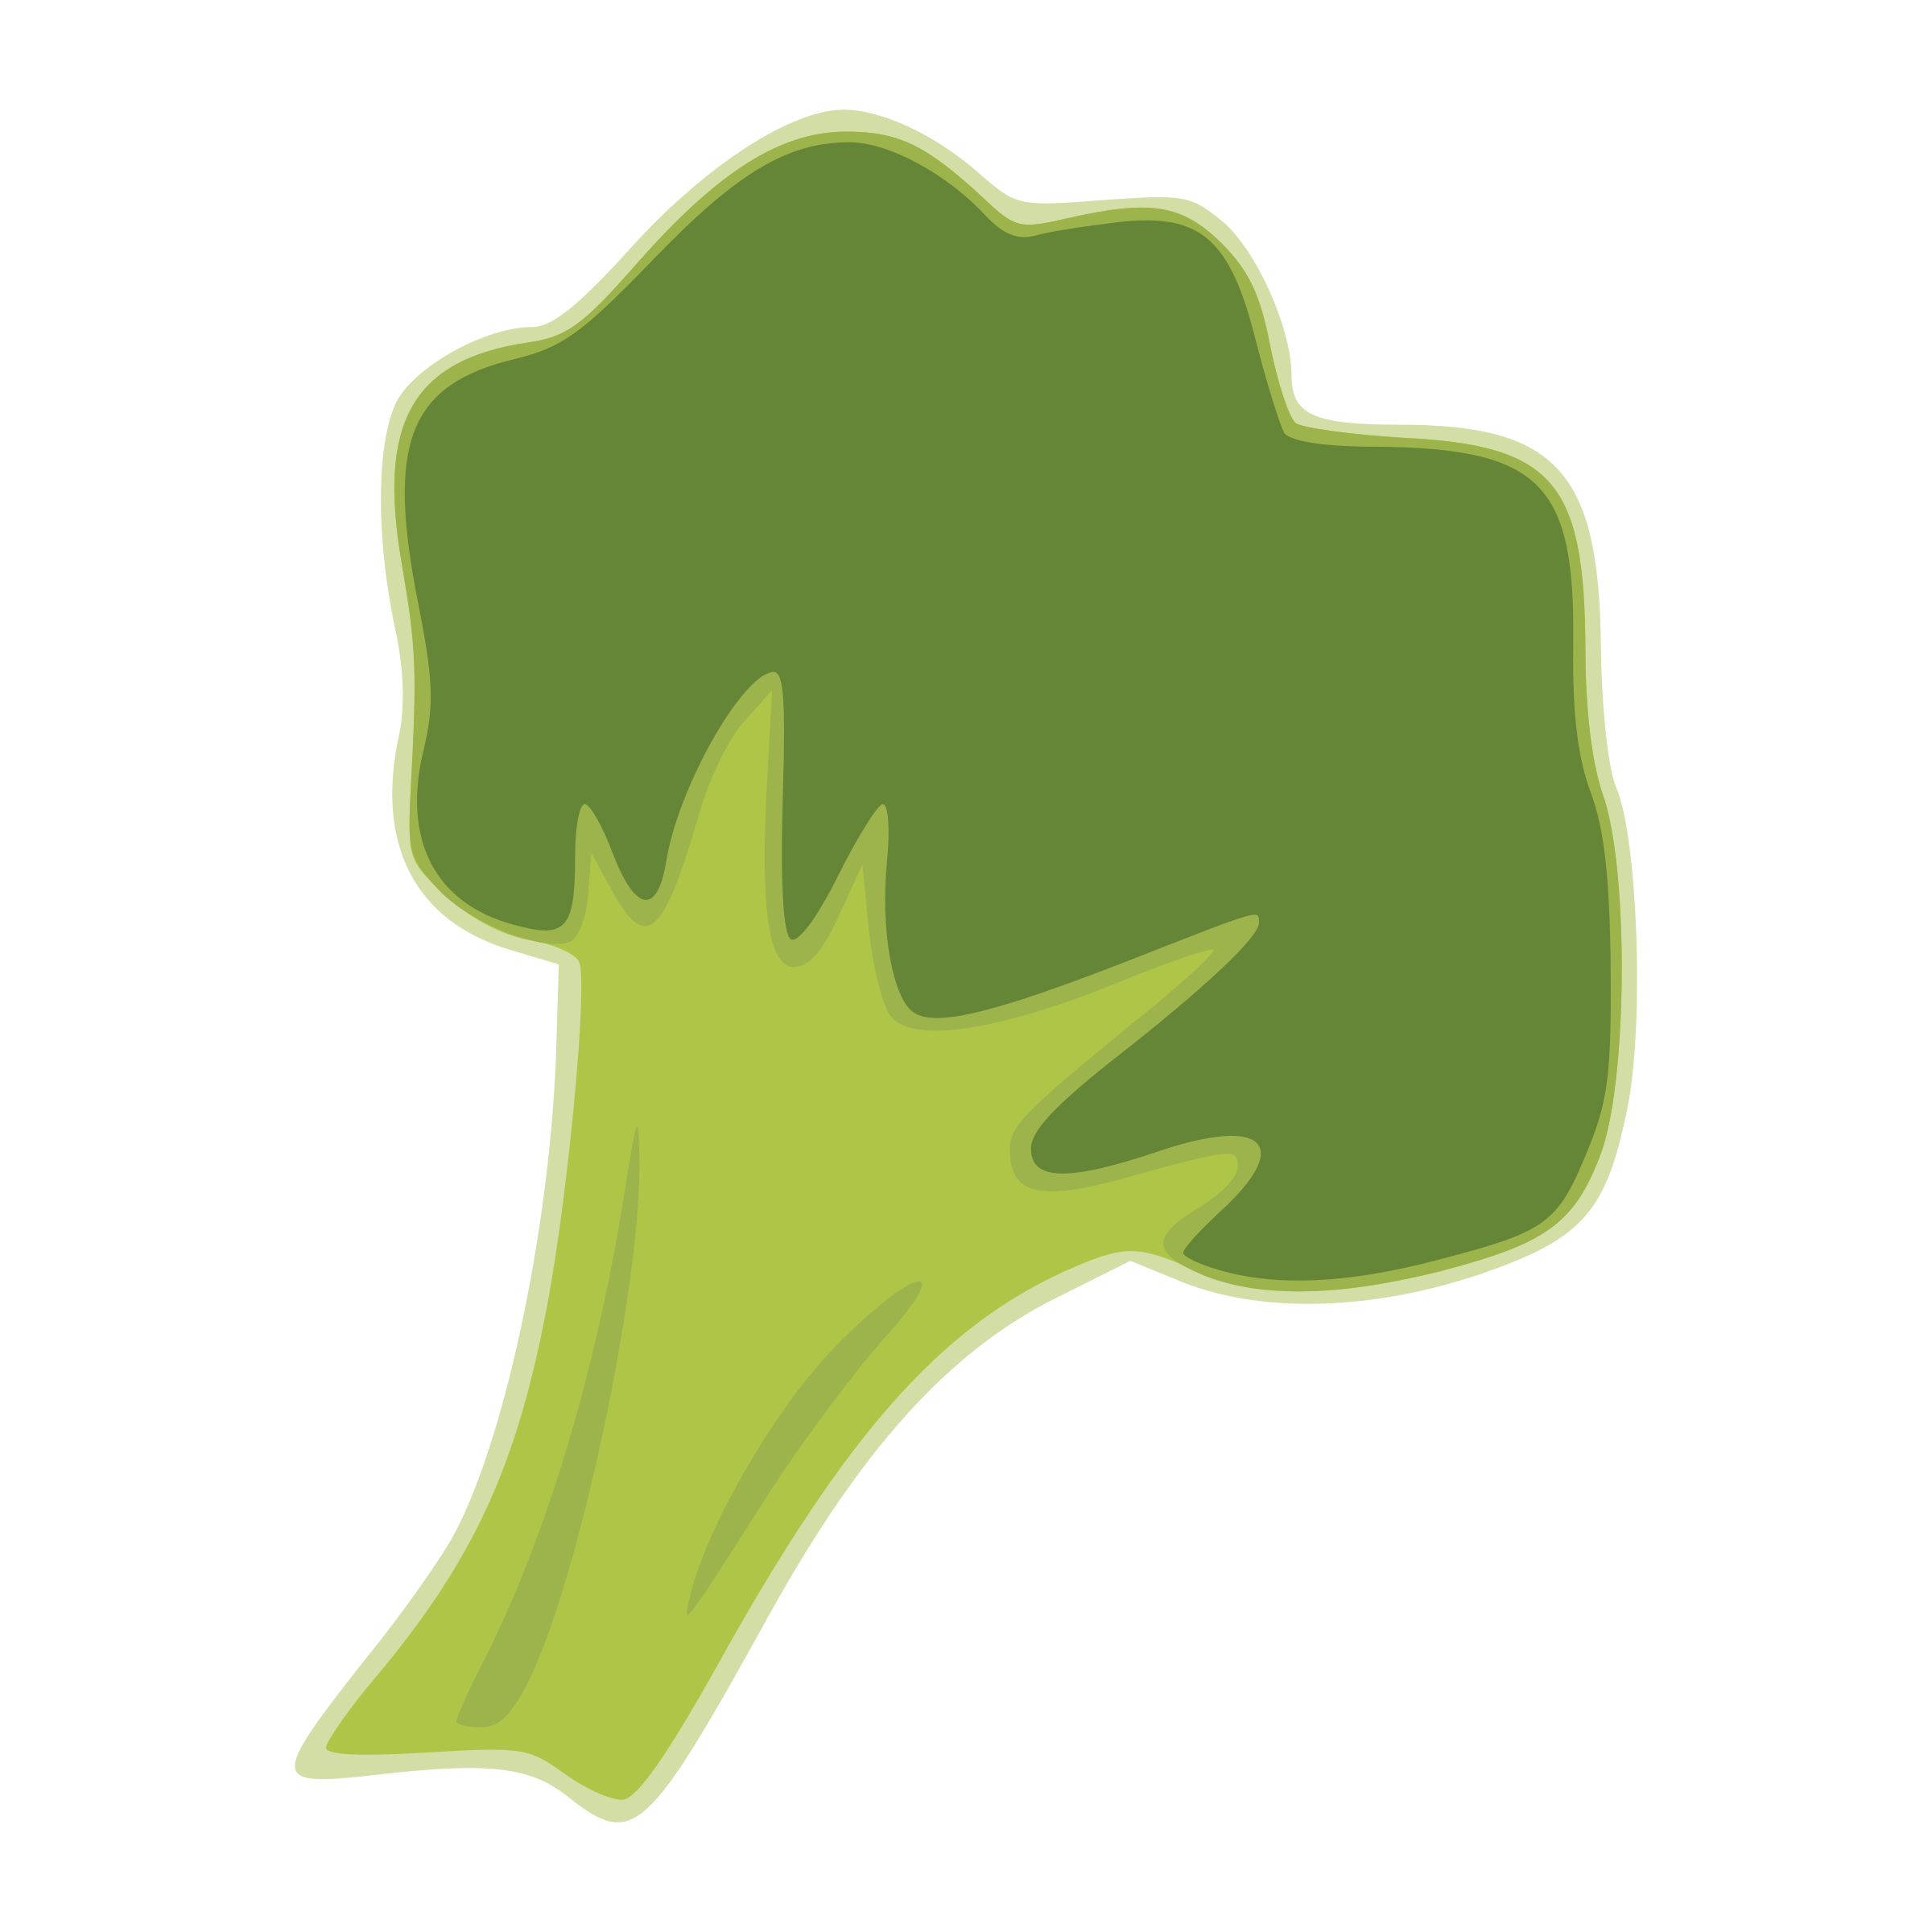 broccoli vector clipart image free stock photo public domain photo cc0 images broccoli vector clipart image free